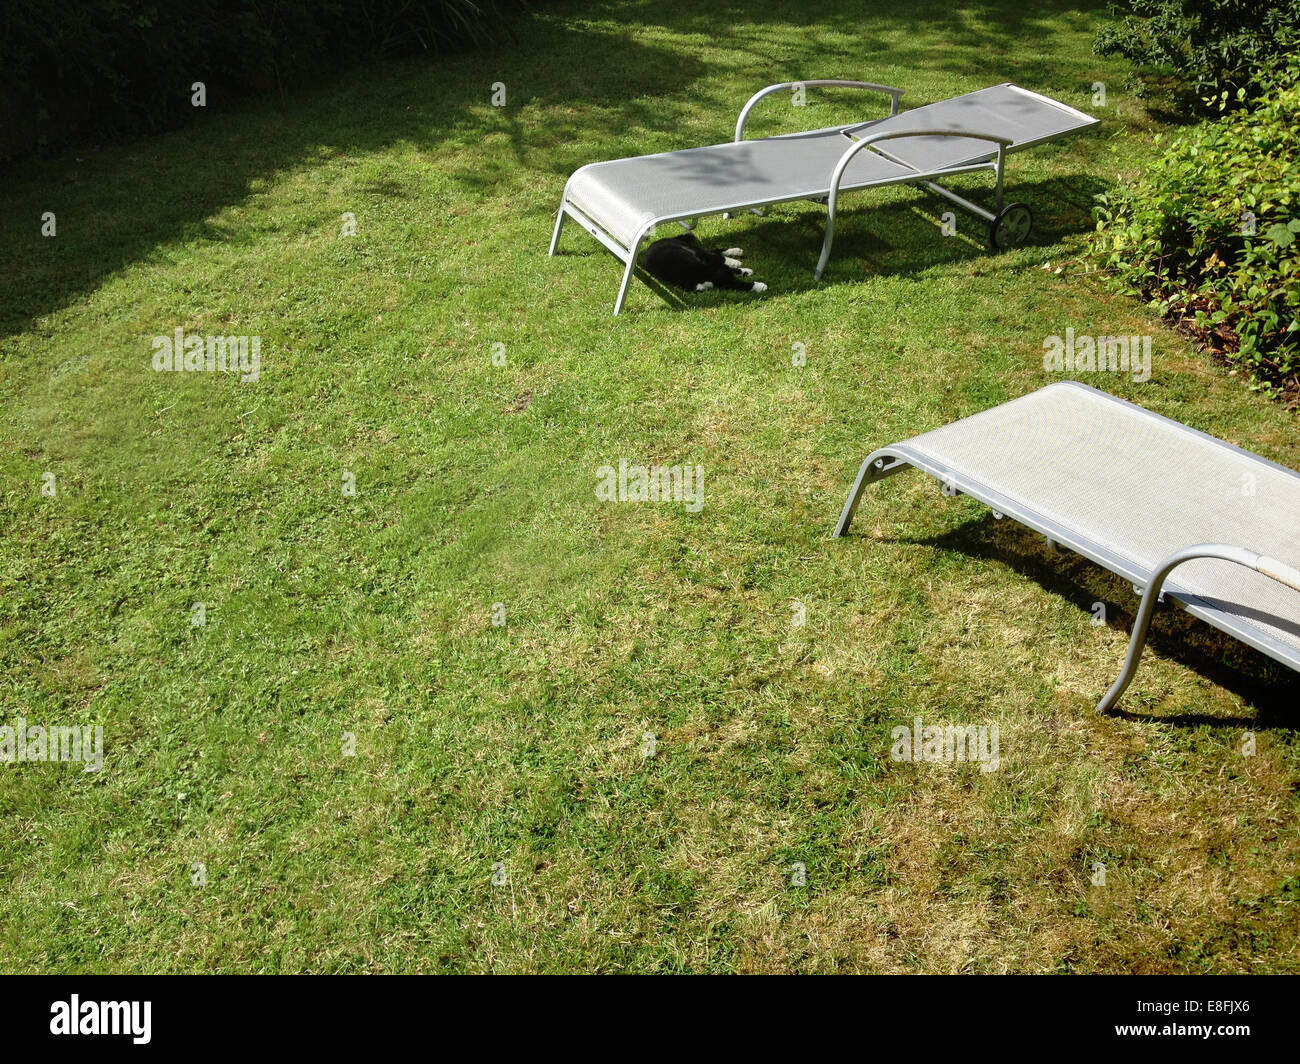 Two empty loungers and sleeping cat in a garden - Stock Image